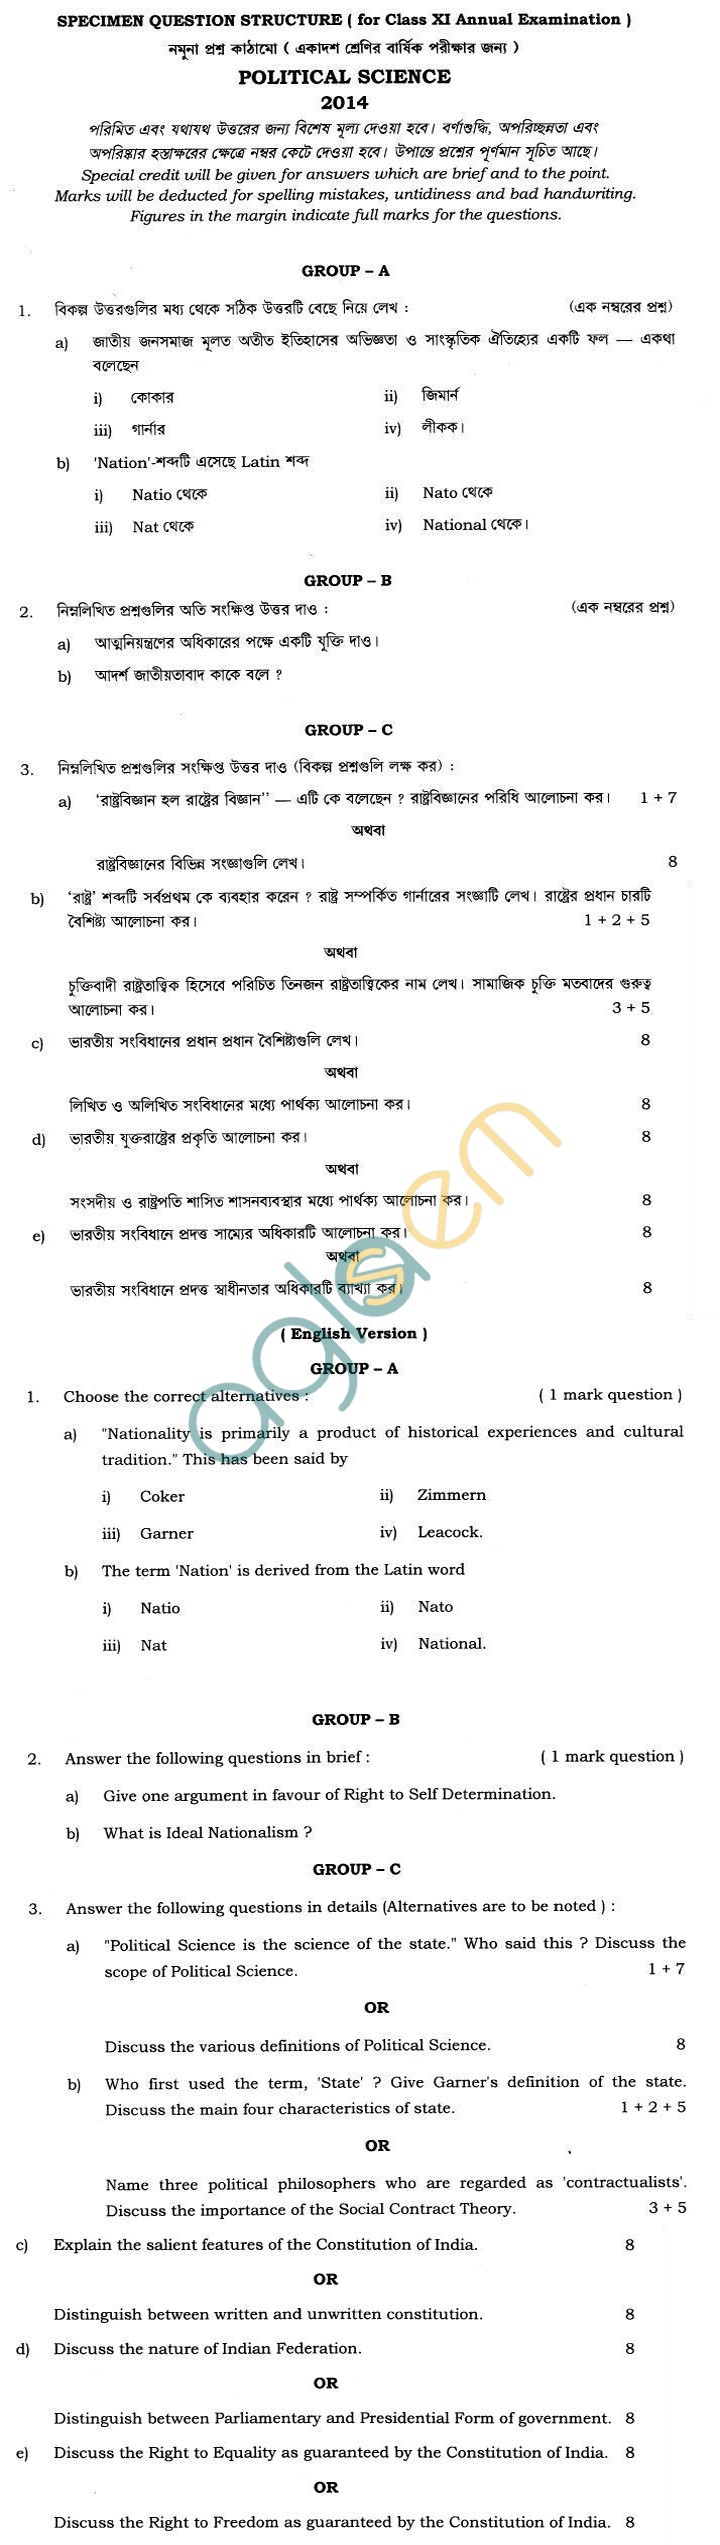 West Bengal Board Sample Question Paper for Class 11 - Political Science